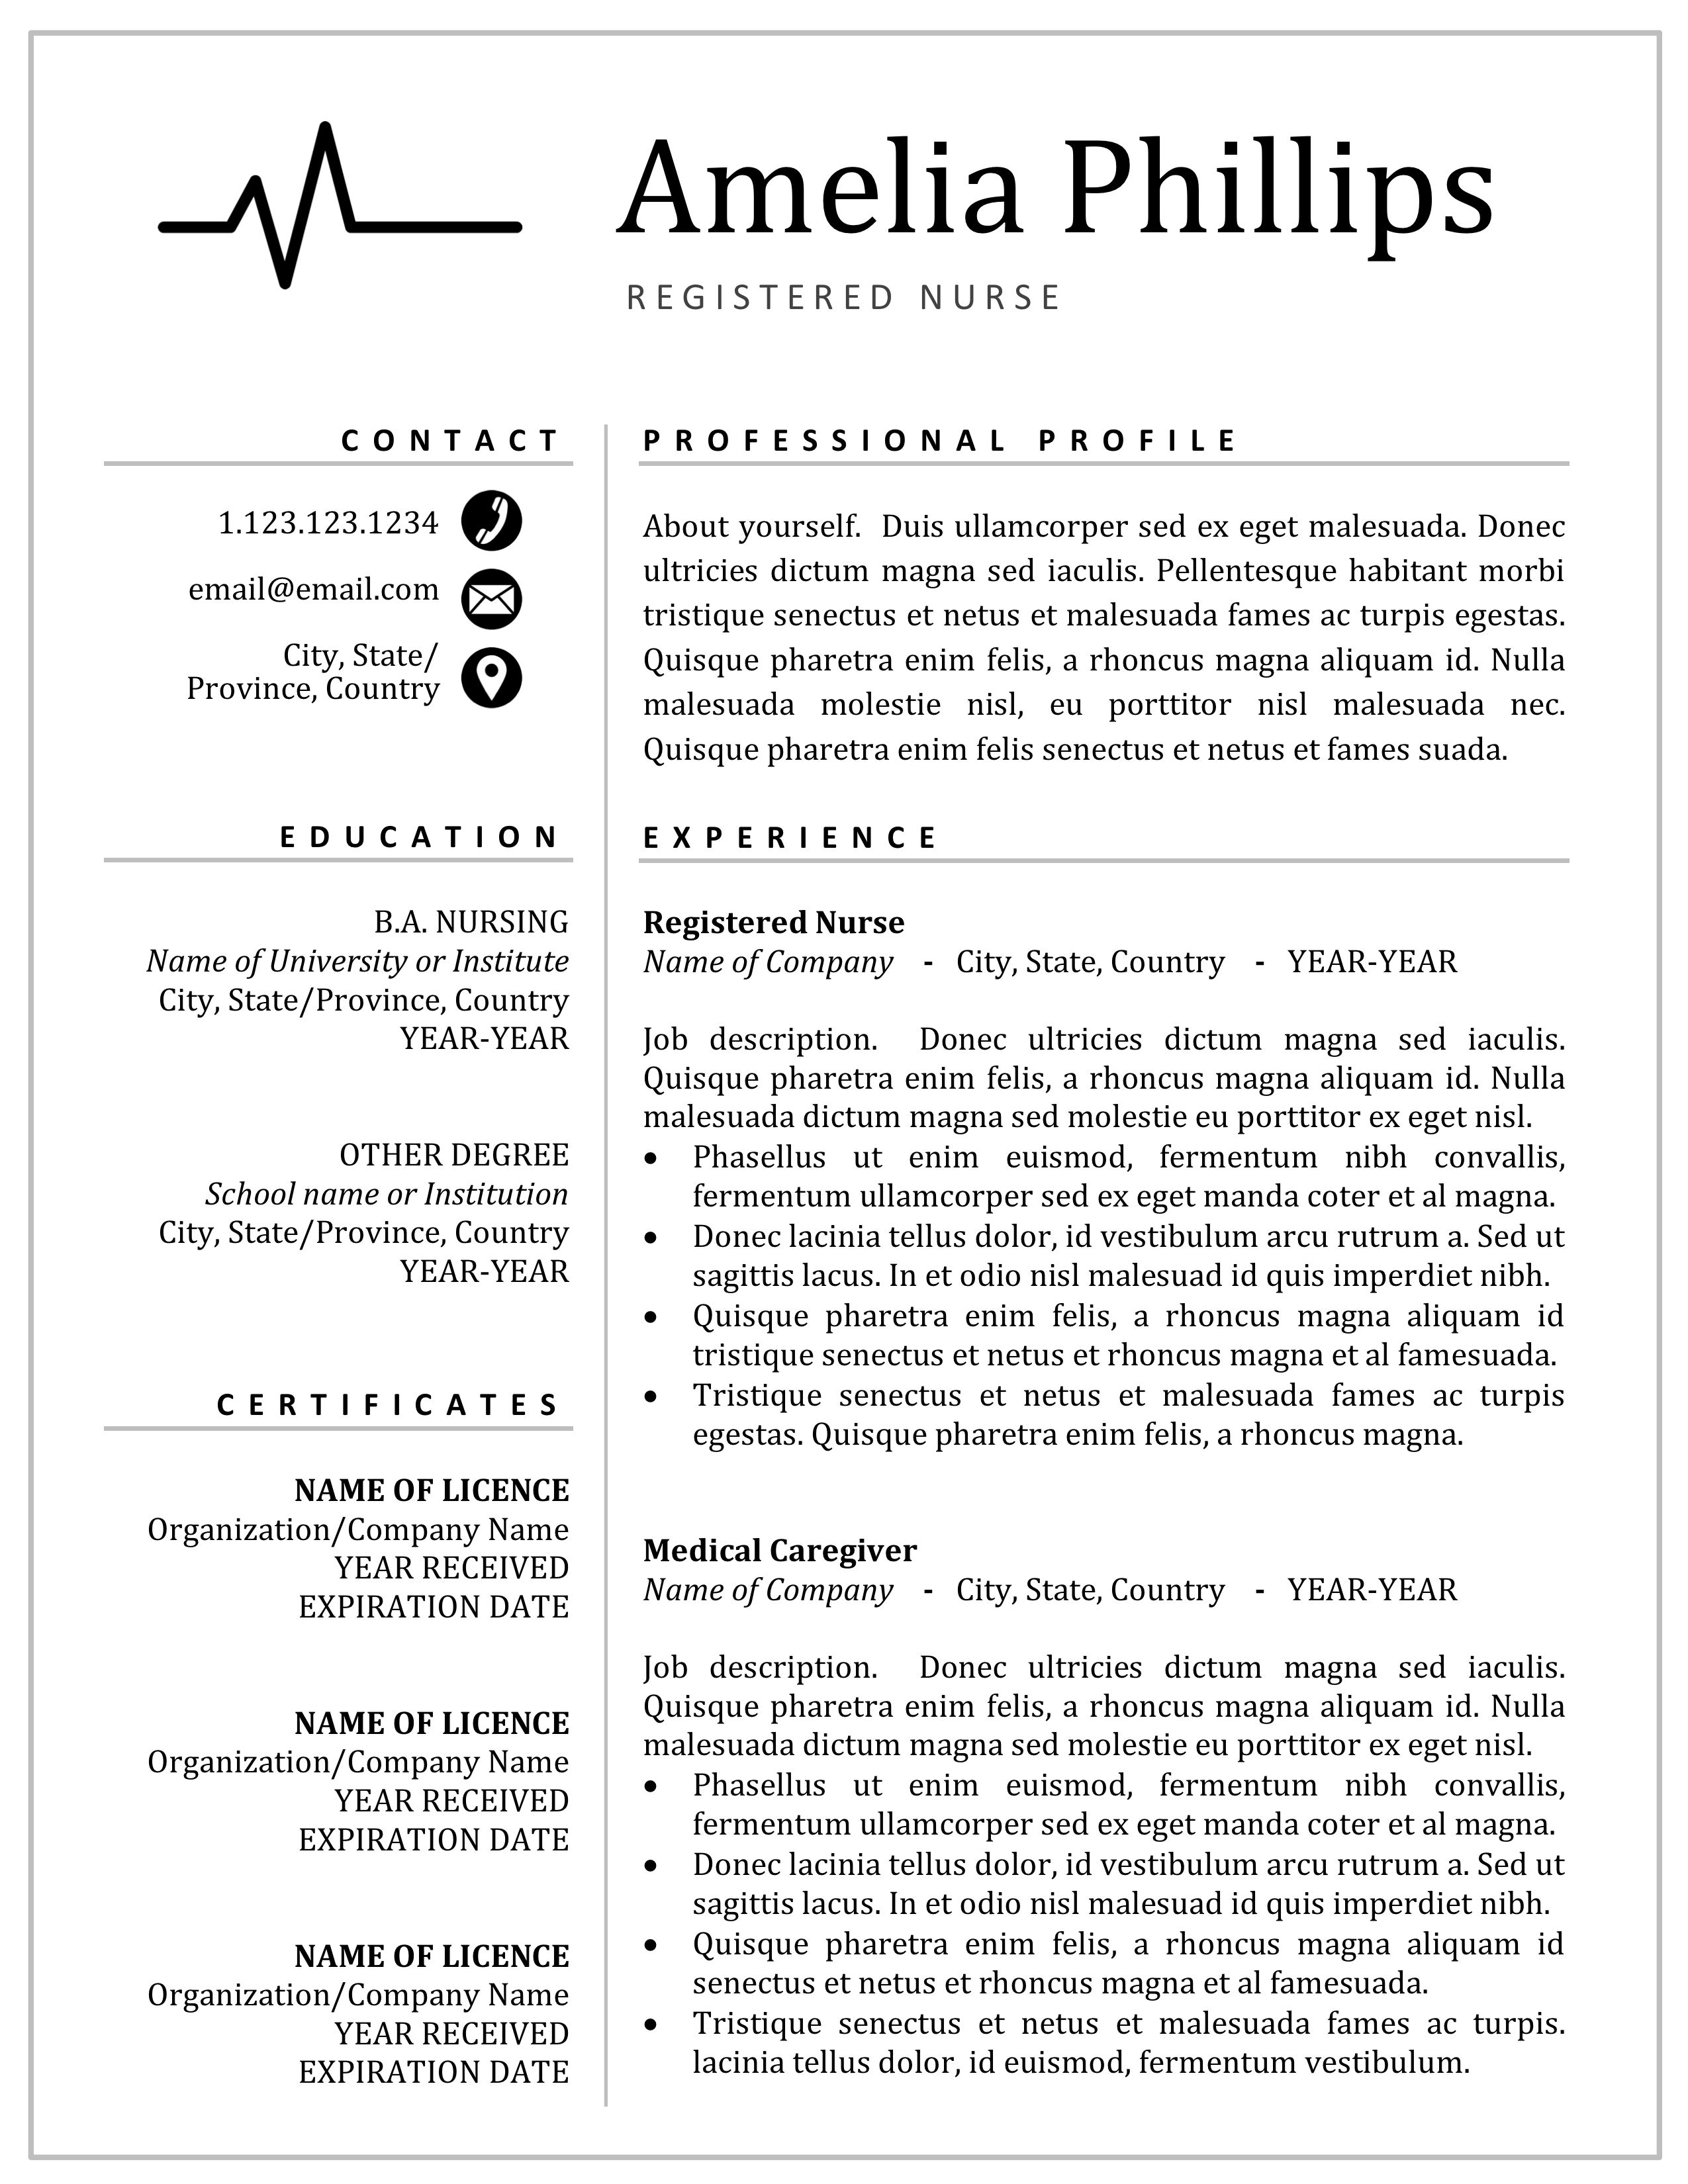 Nurse Resume CV Template Design for MS Word and Mac Pages